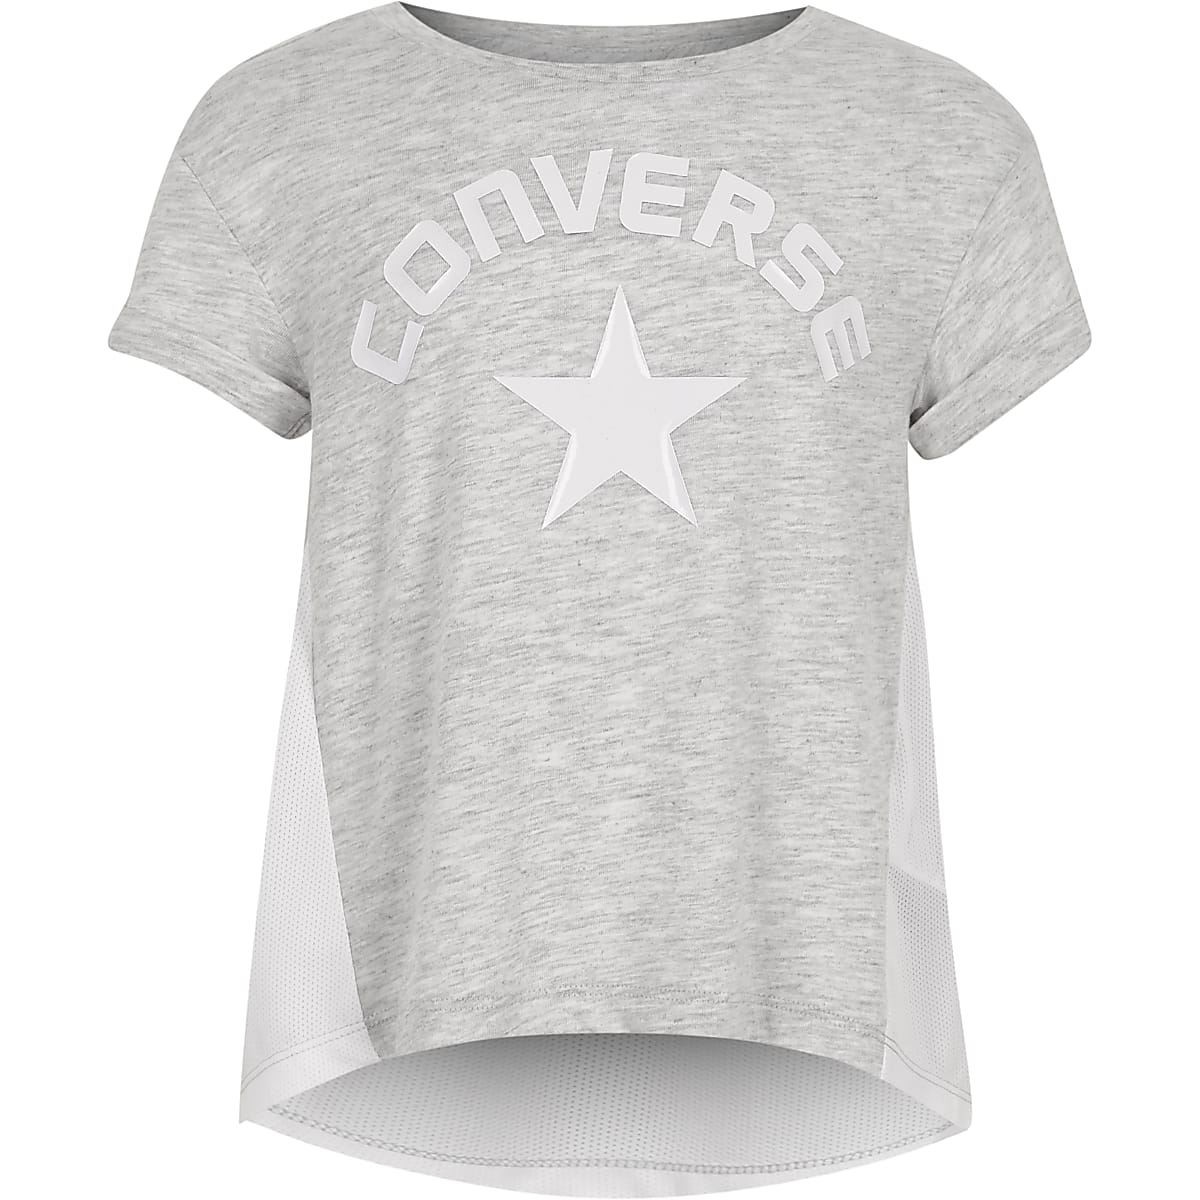 8b90dcc0d96f Girls Converse grey lunar rock T-shirt - T-Shirts - Tops - girls